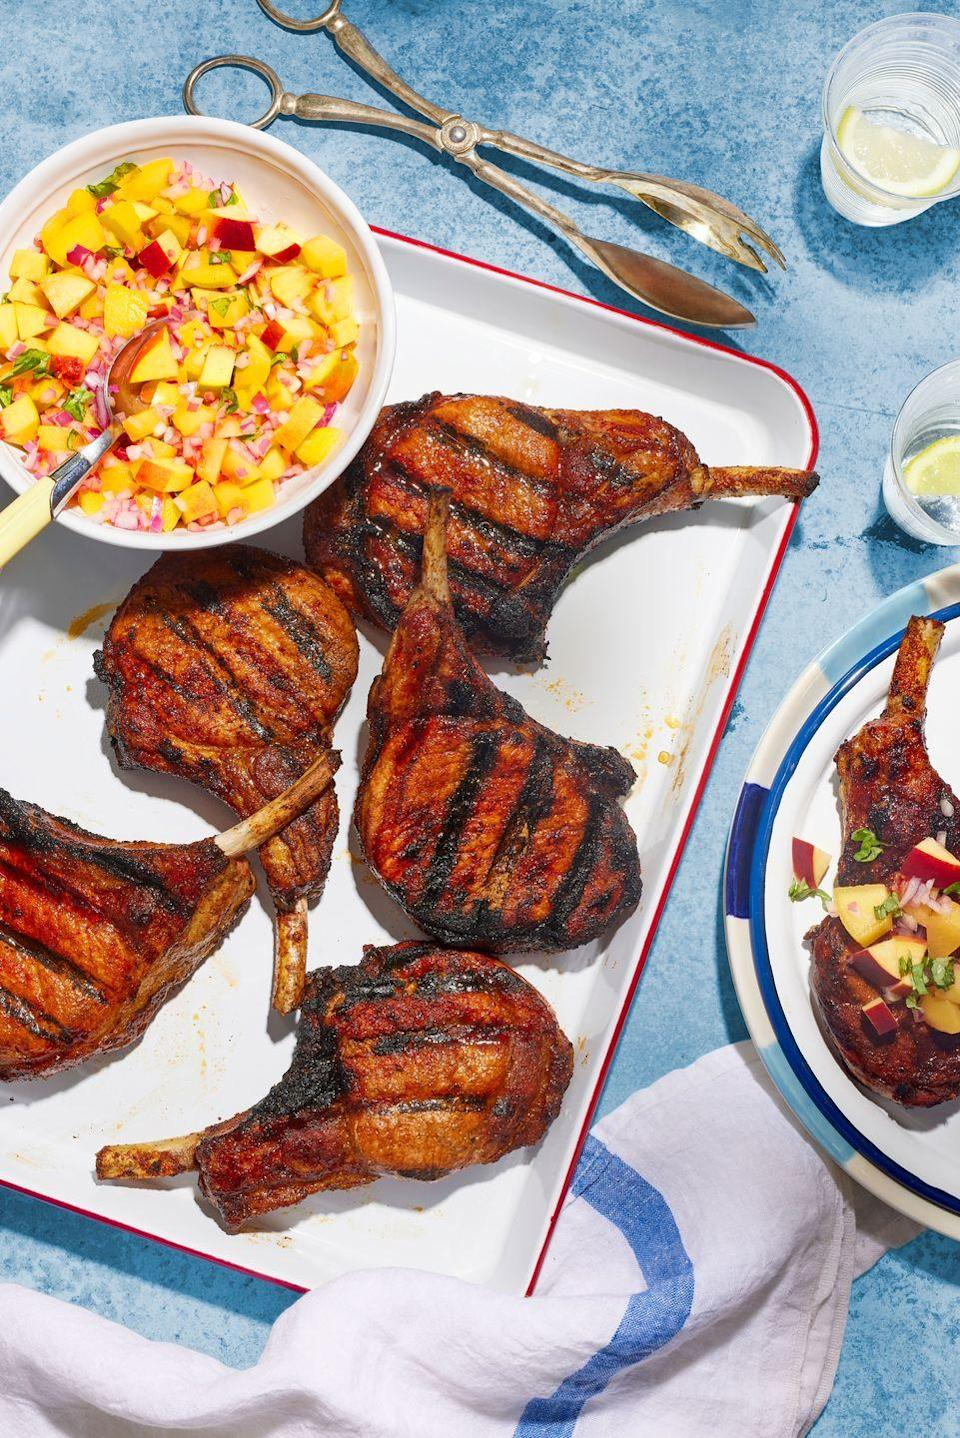 """<p>These spicy-sweet chops get lots of flavor from being grilled, and pair perfectly with a fresh summer peach relish.</p><p><strong><a href=""""https://www.countryliving.com/food-drinks/a36751653/smoky-grilled-dry-rub-pork-chops-recipe/"""" rel=""""nofollow noopener"""" target=""""_blank"""" data-ylk=""""slk:Get the recipe"""" class=""""link rapid-noclick-resp"""">Get the recipe</a>.</strong></p>"""